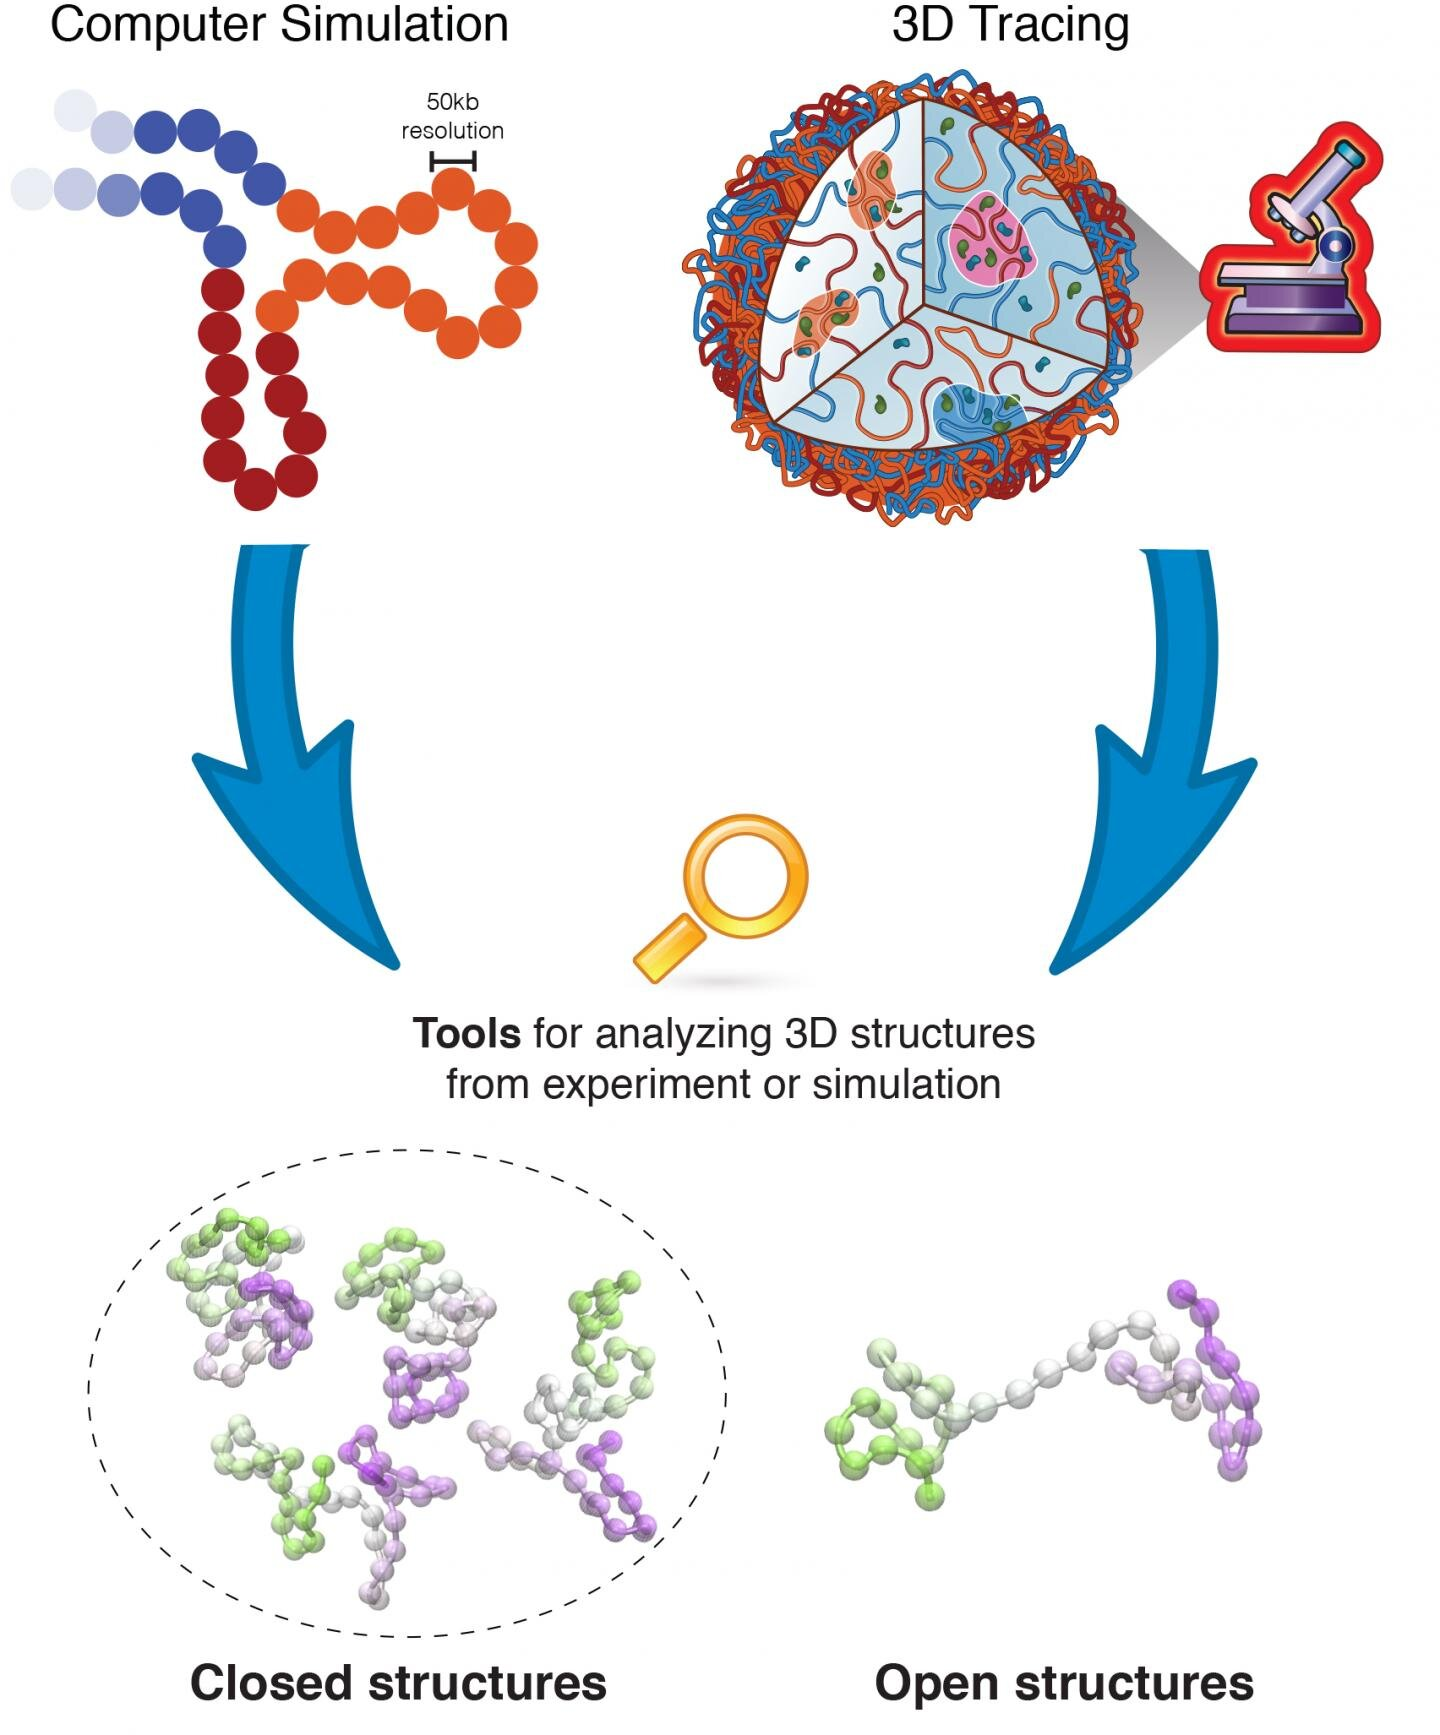 Scientists identify 'dumbbell-like' structures of protein-encoding DNA